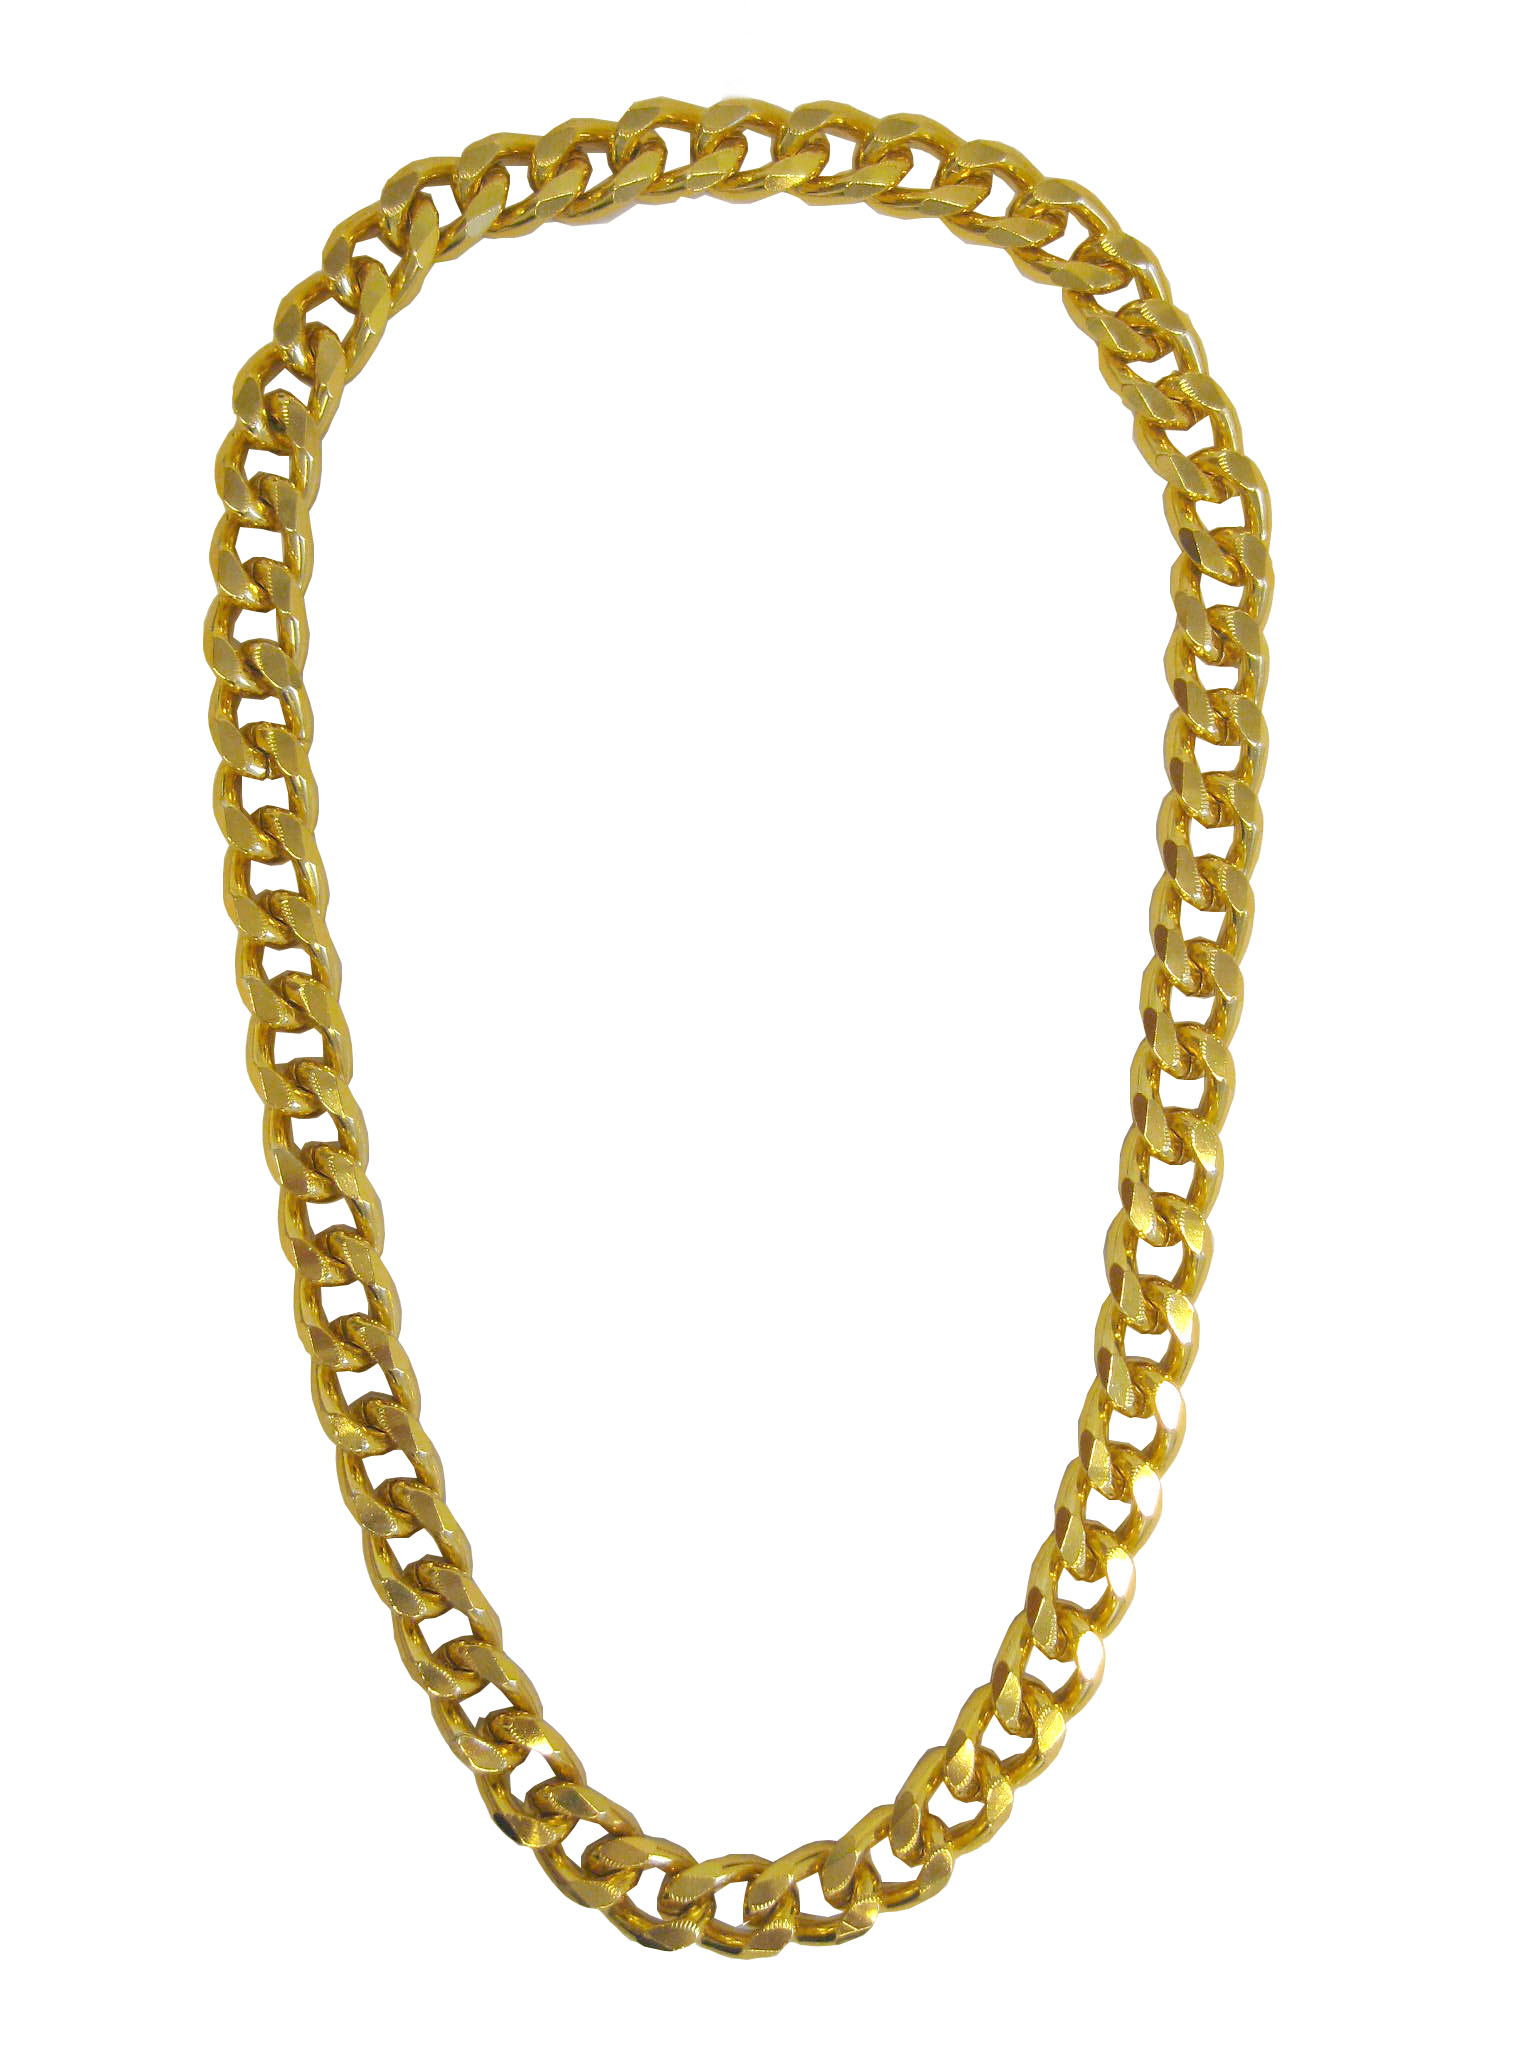 Free Gold Chain Cliparts, Download Free Clip Art, Free Clip Art on.